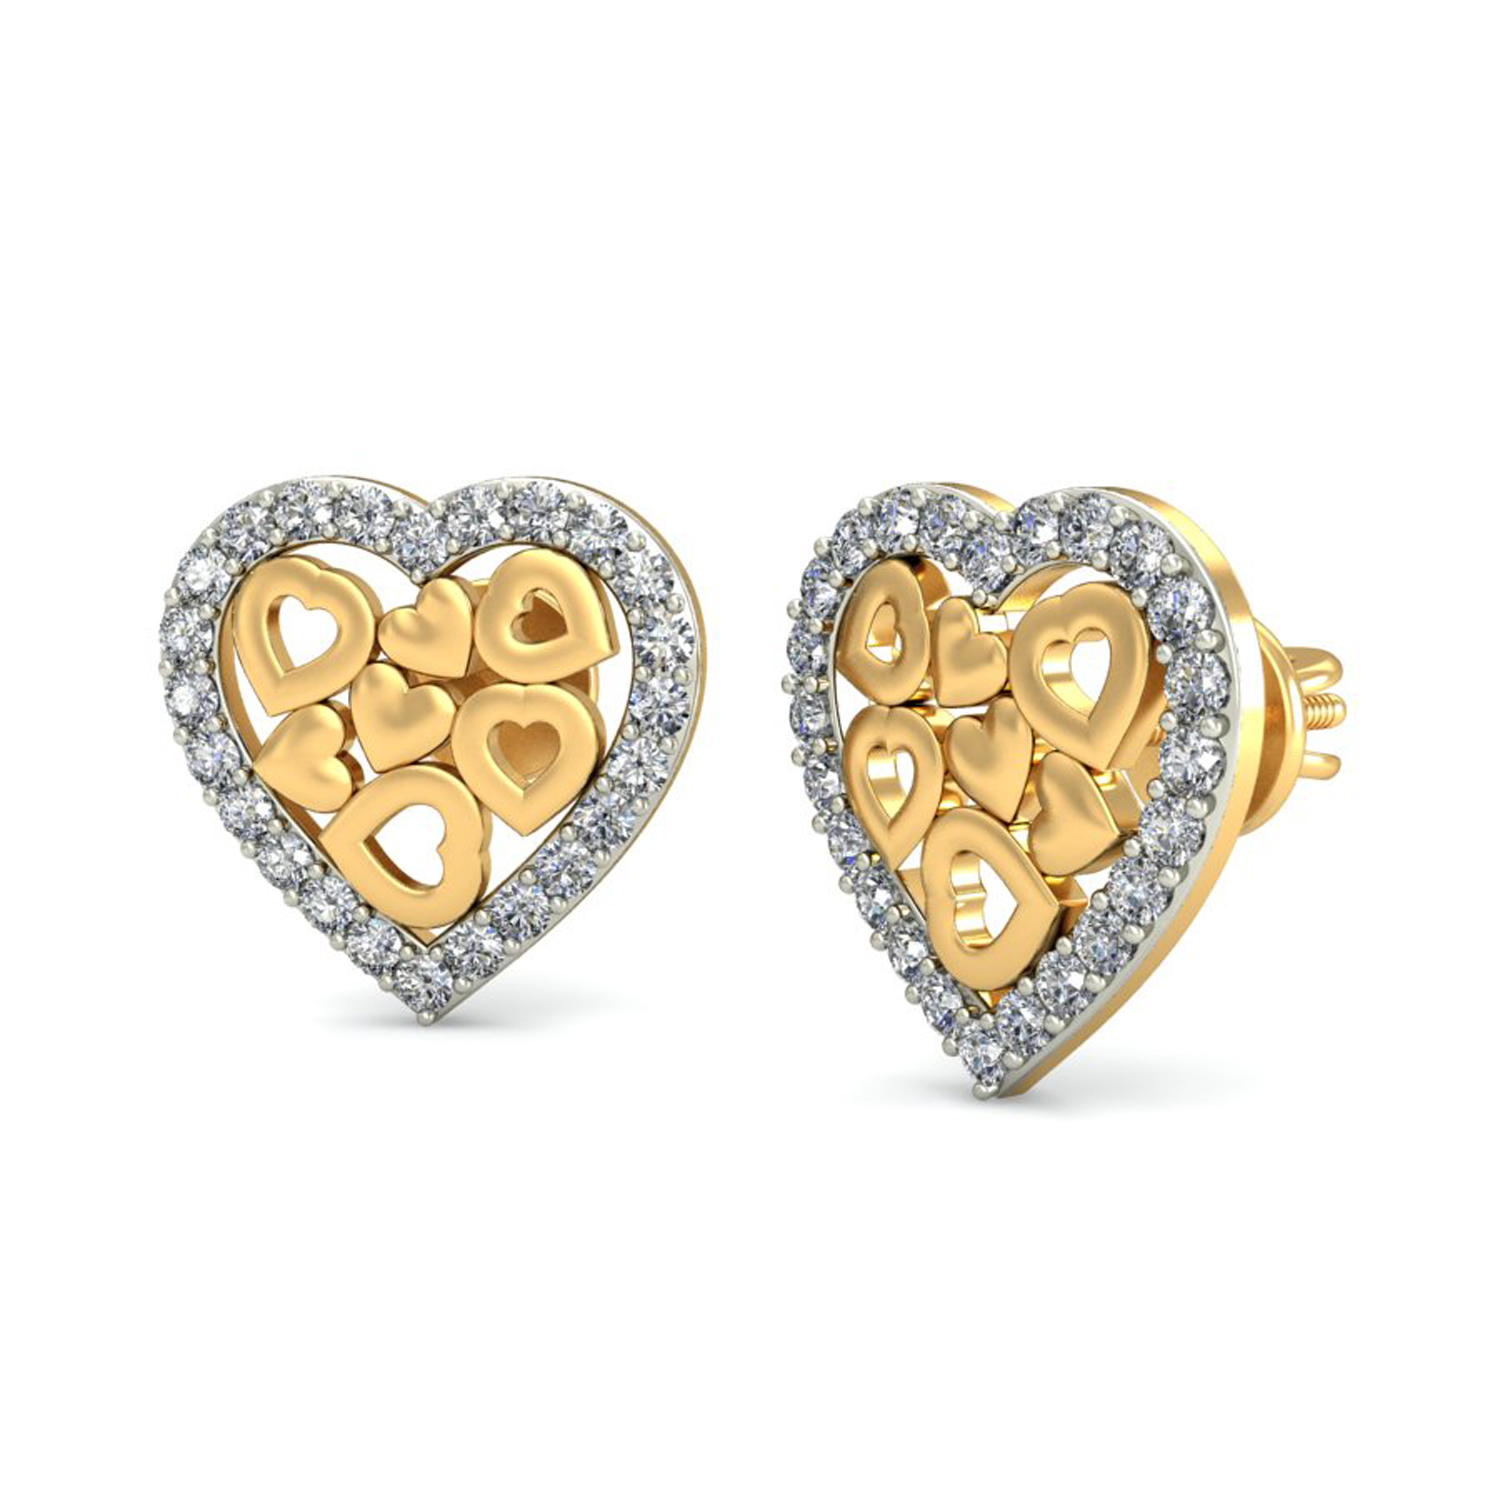 goldheart earrings gold earrings 0 29 ct gift your 8717